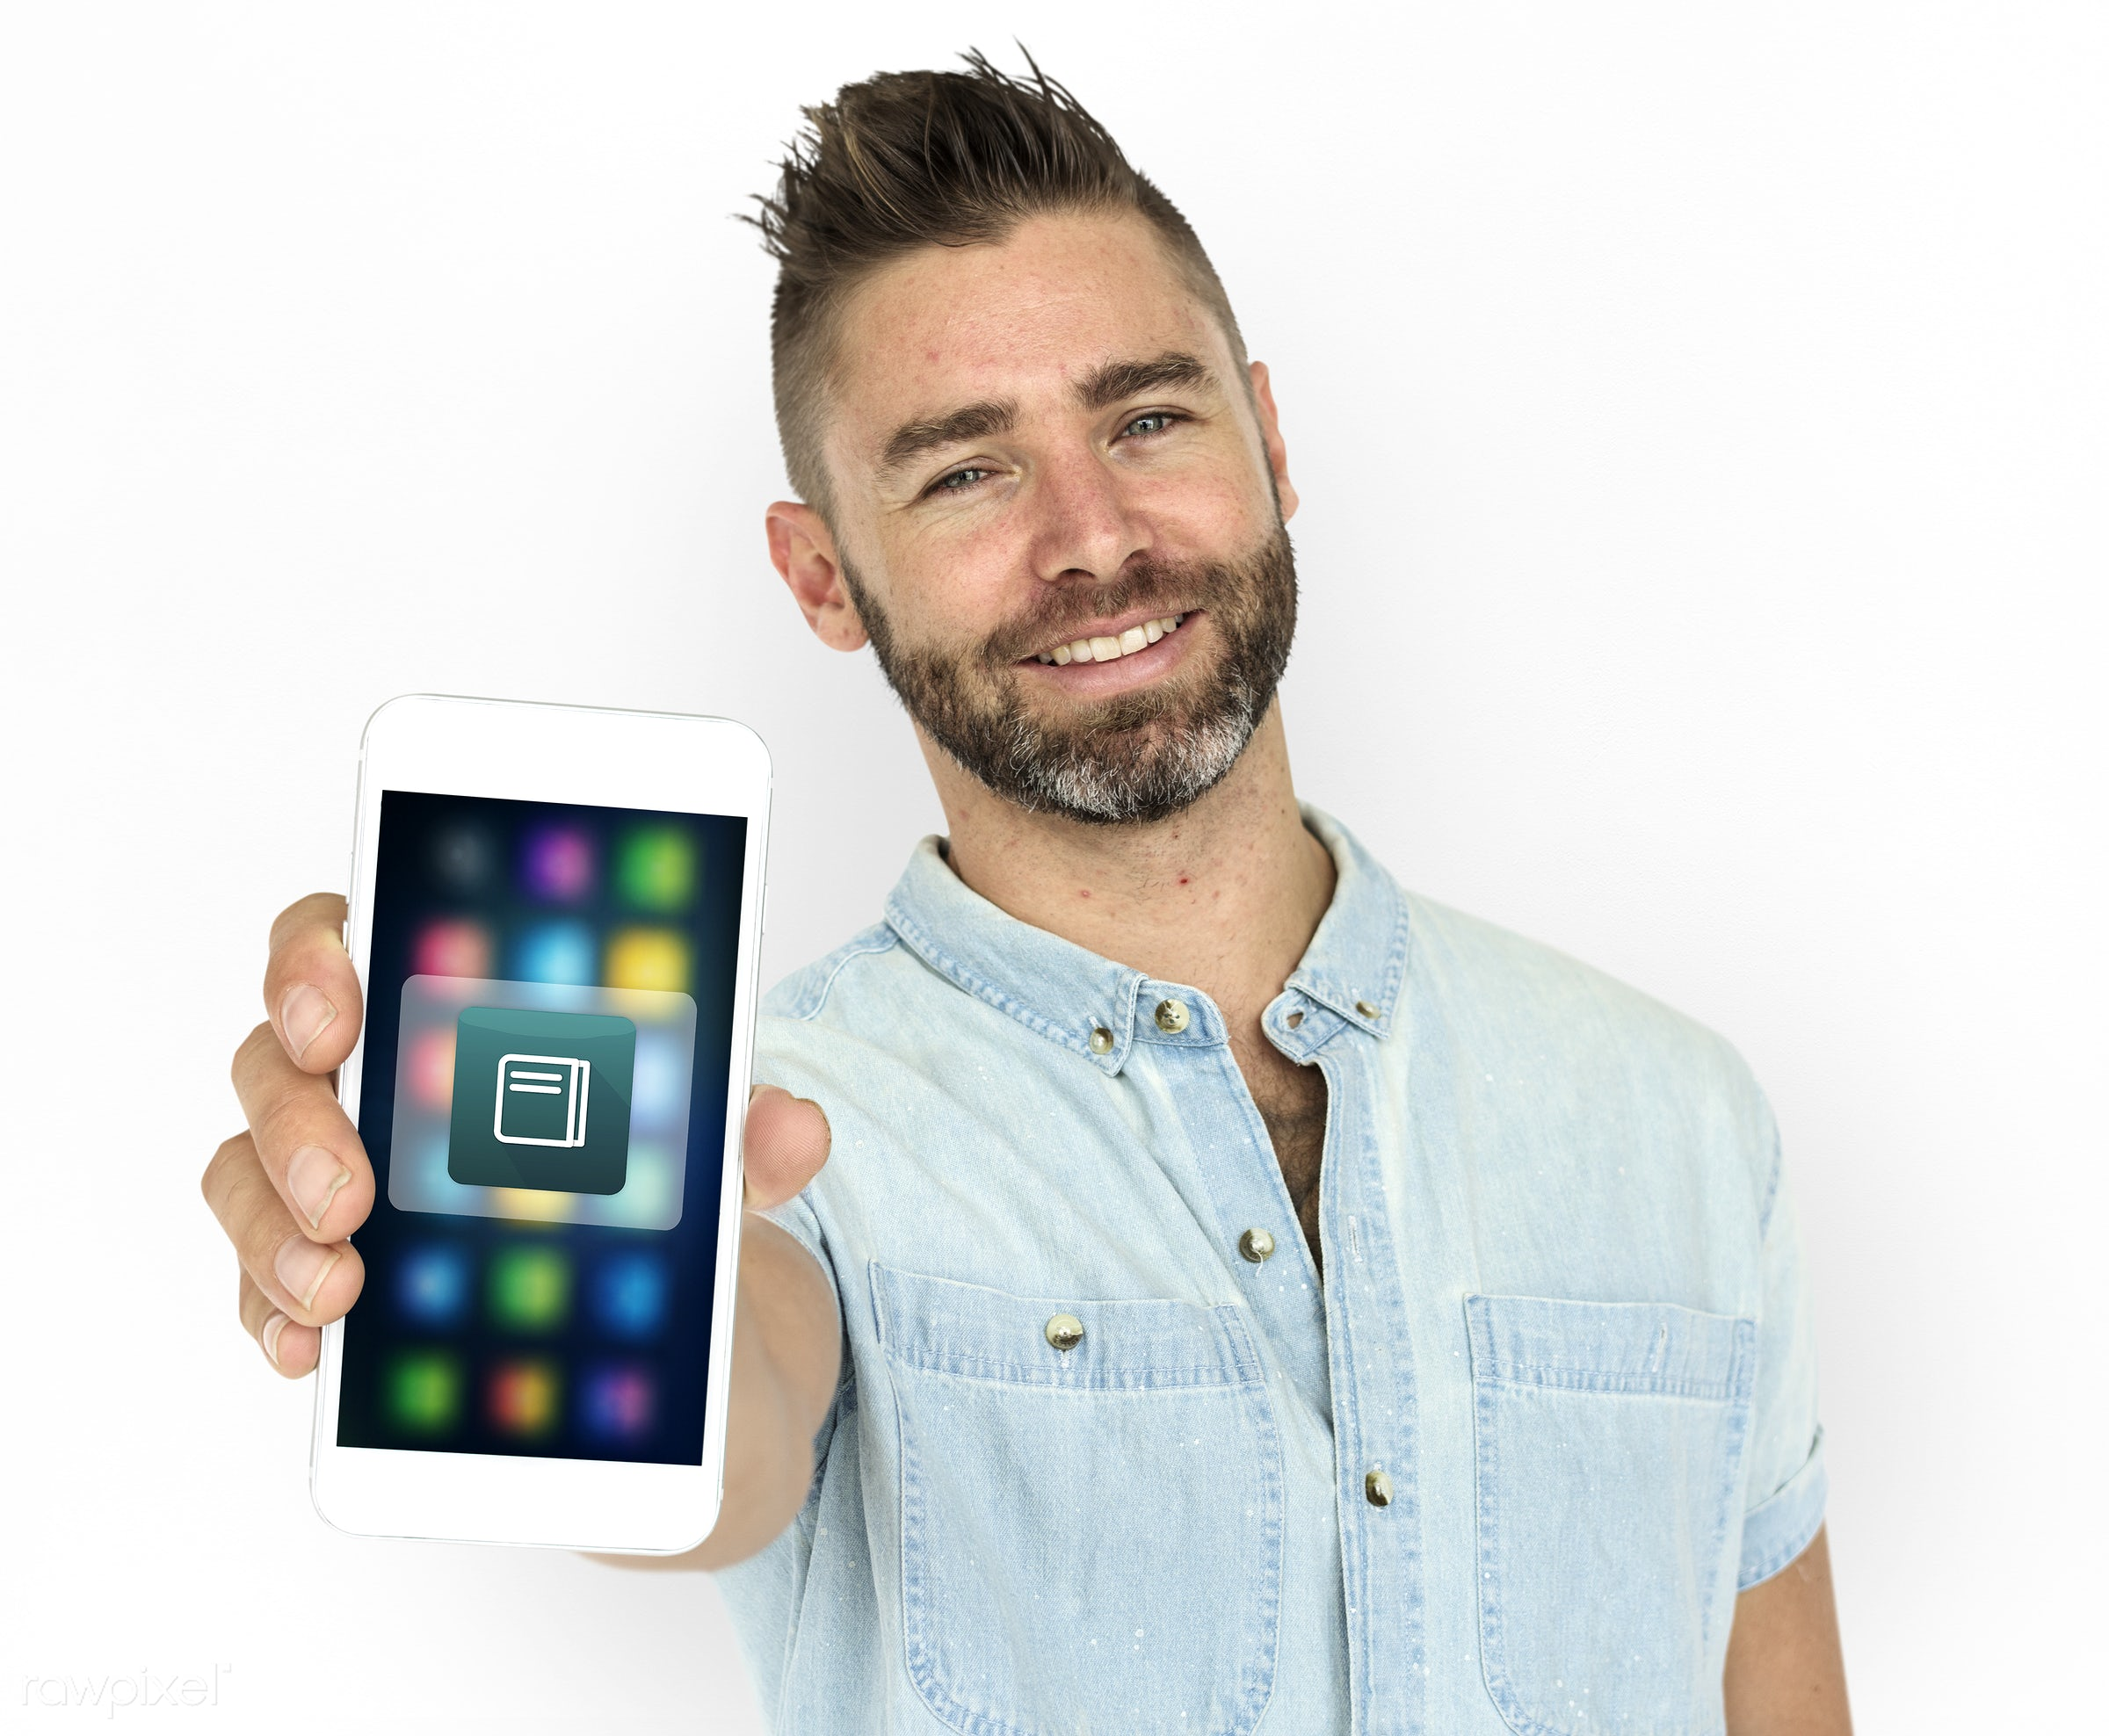 Bearded man holding a smartphone - studio, lecture, person, phone, technology, portable, holding, illustration, study, show...